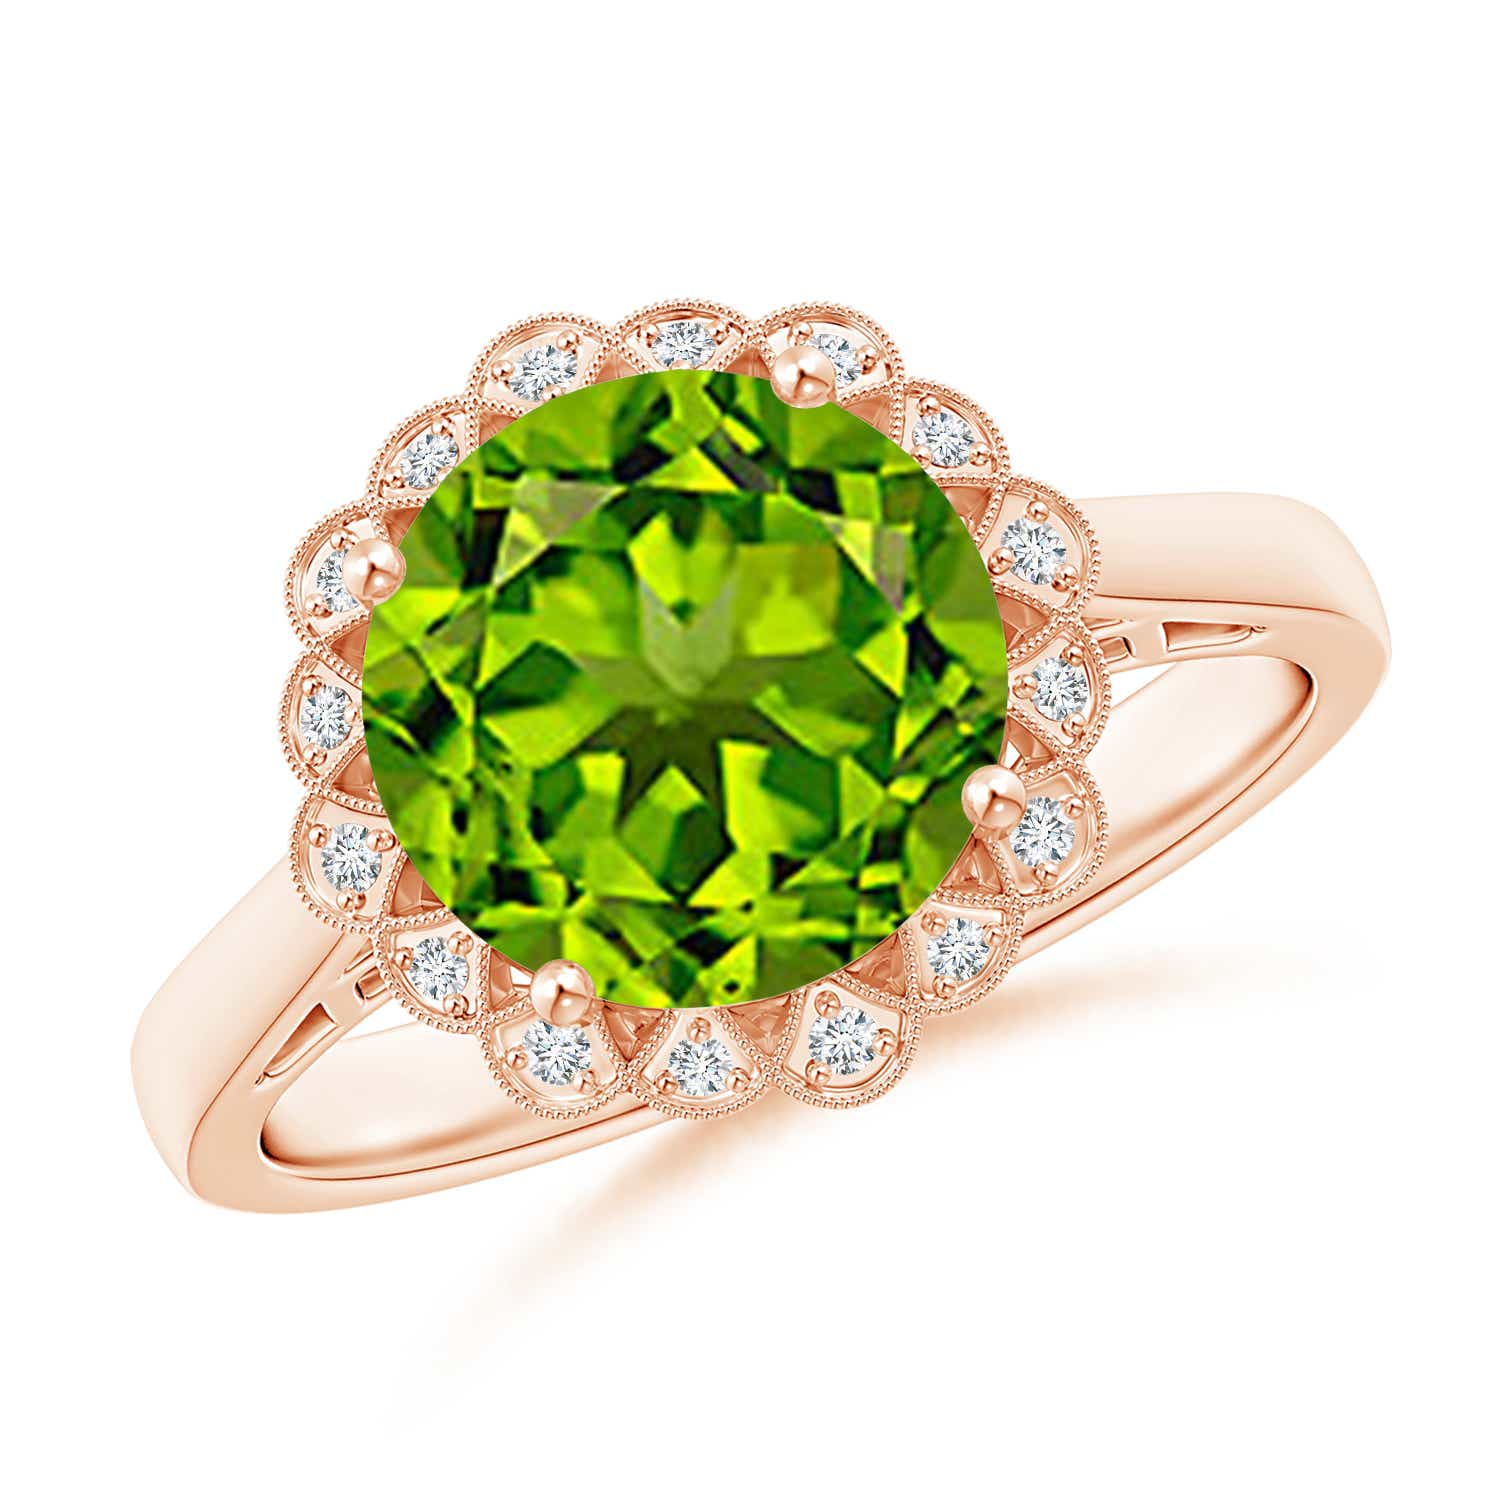 Angara Vintage Diamond Floral Halo Oval Peridot Cocktail Ring in White Gold VoNjOOXii2